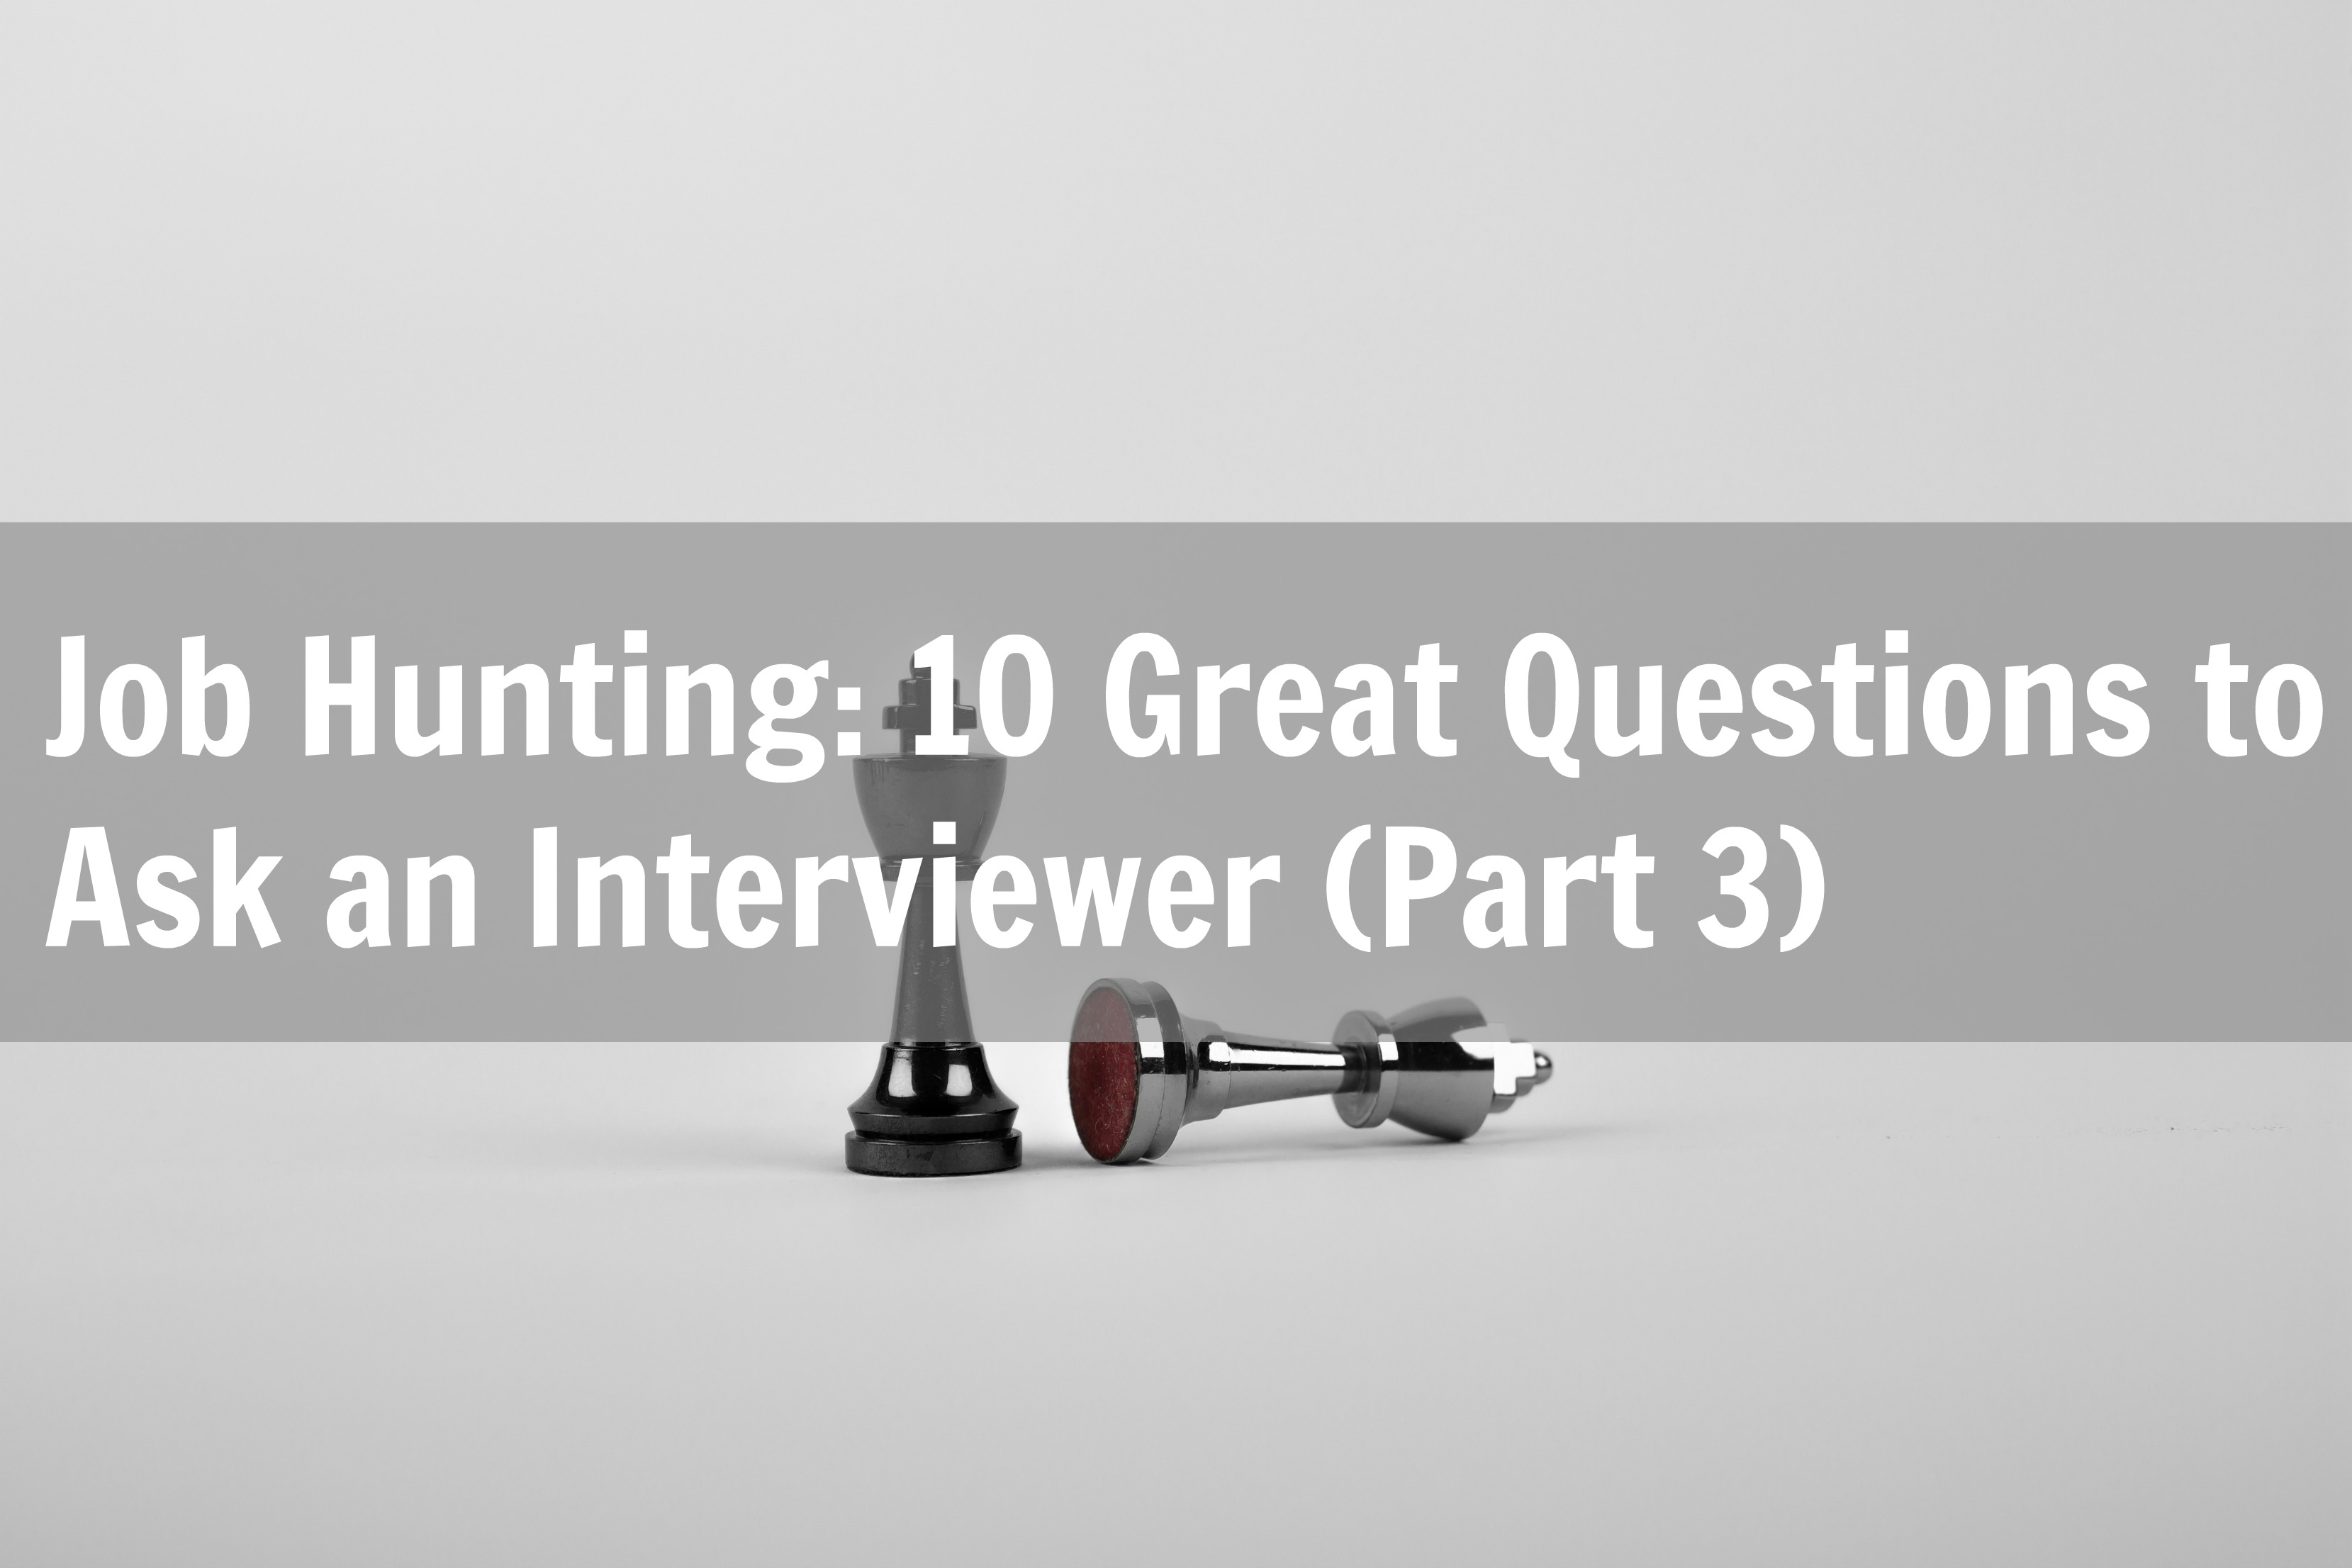 Candidate faqs globalhit this is the final portion of the 10 great questions to ask an interviewer series part 1 can be viewed here and part 2 can be viewed here 1betcityfo Choice Image